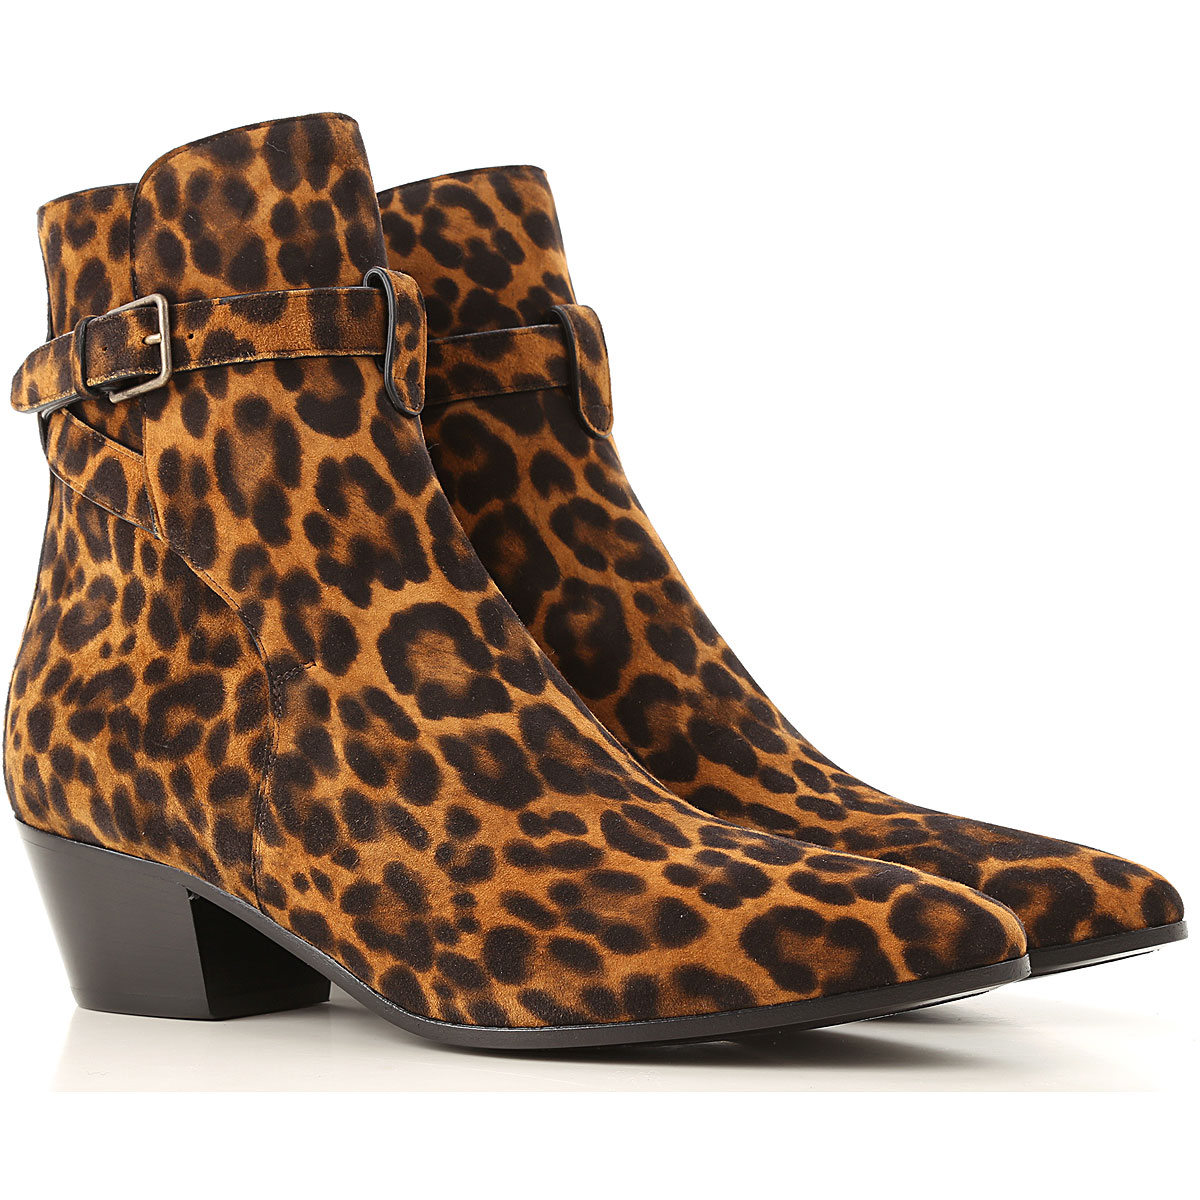 Yves Saint Laurent Boots for Women, Booties On Sale, Spotted Natural Coffee, Leather, 2019, 10 7 8.5 9